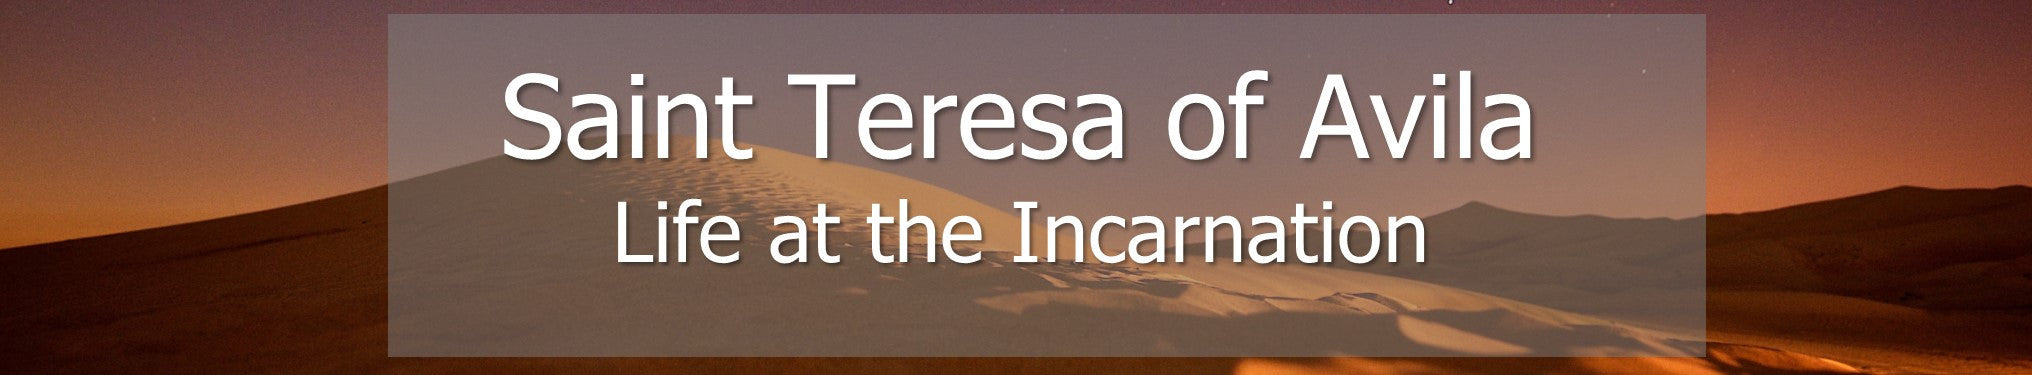 Saint Teresa of Avila - Life at the Incarnation